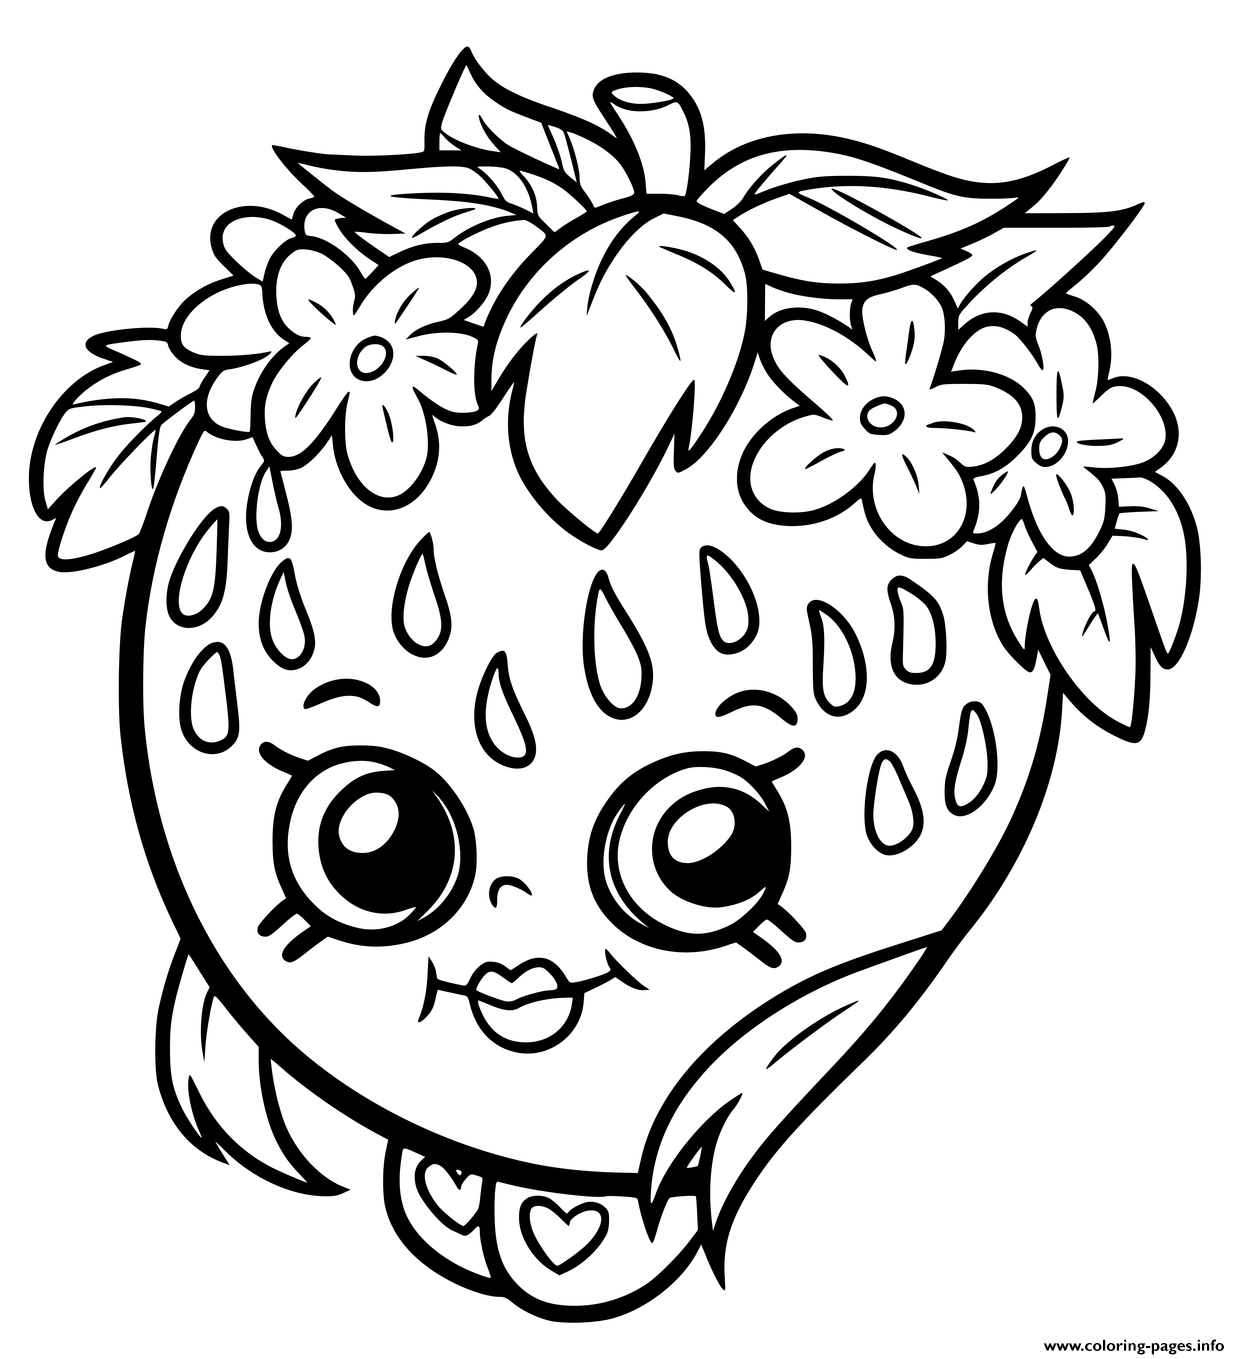 Print shopkins strawberry smile coloring pages Shopkins